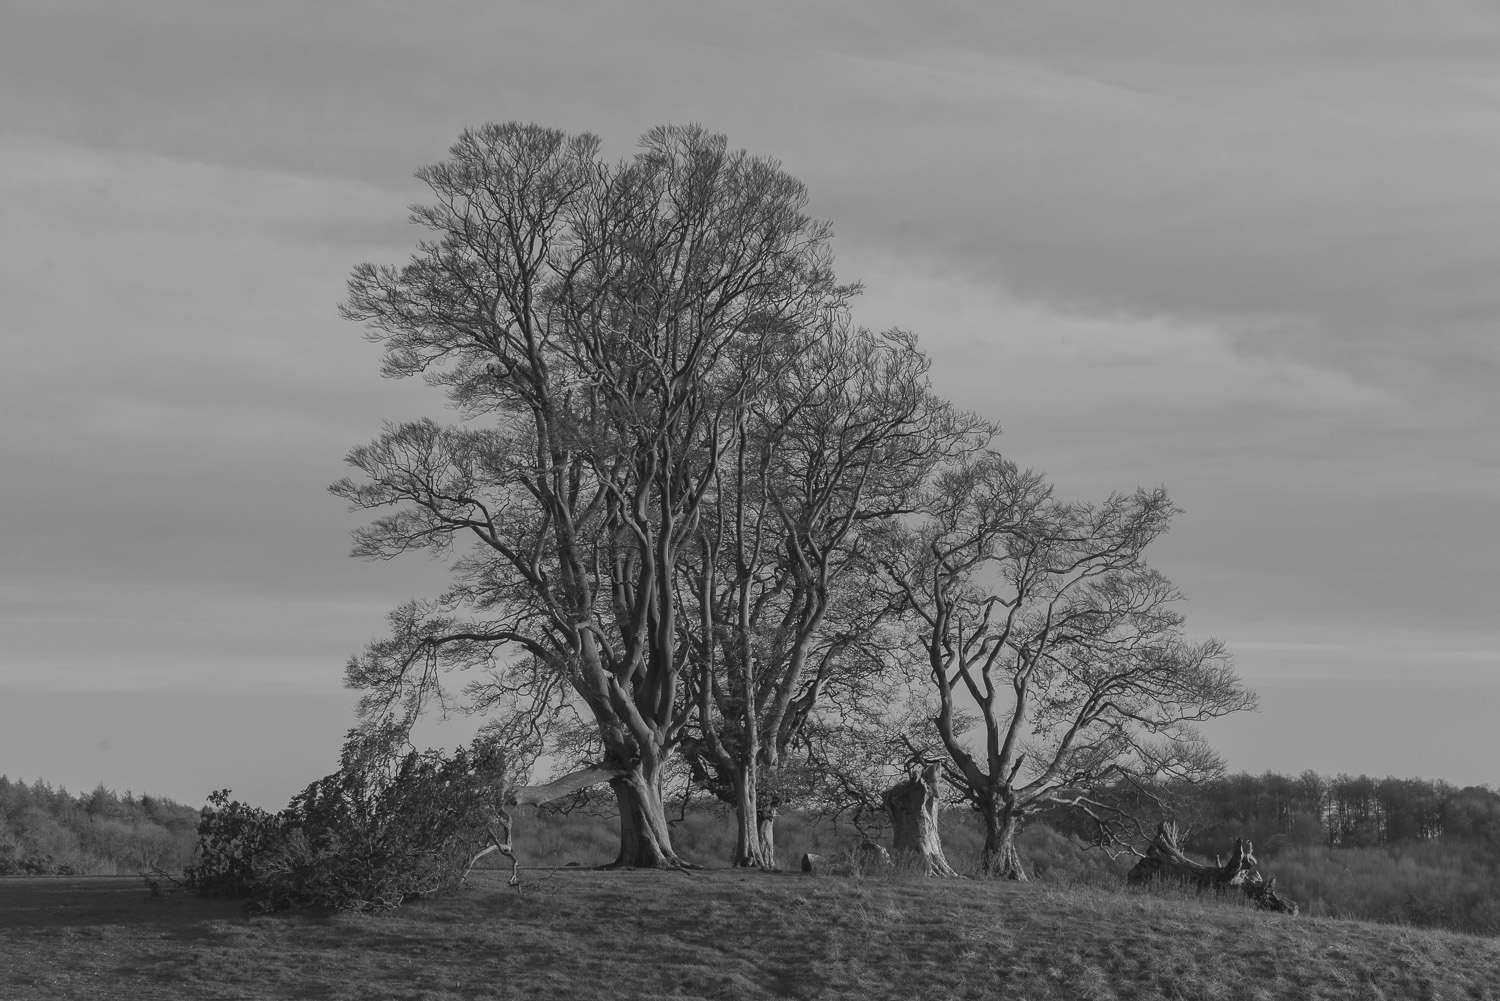 winter-trees-Stanway-Gloucestershire-Jo-Kearney-photos-landscape-photography-video-landscapes.jpg